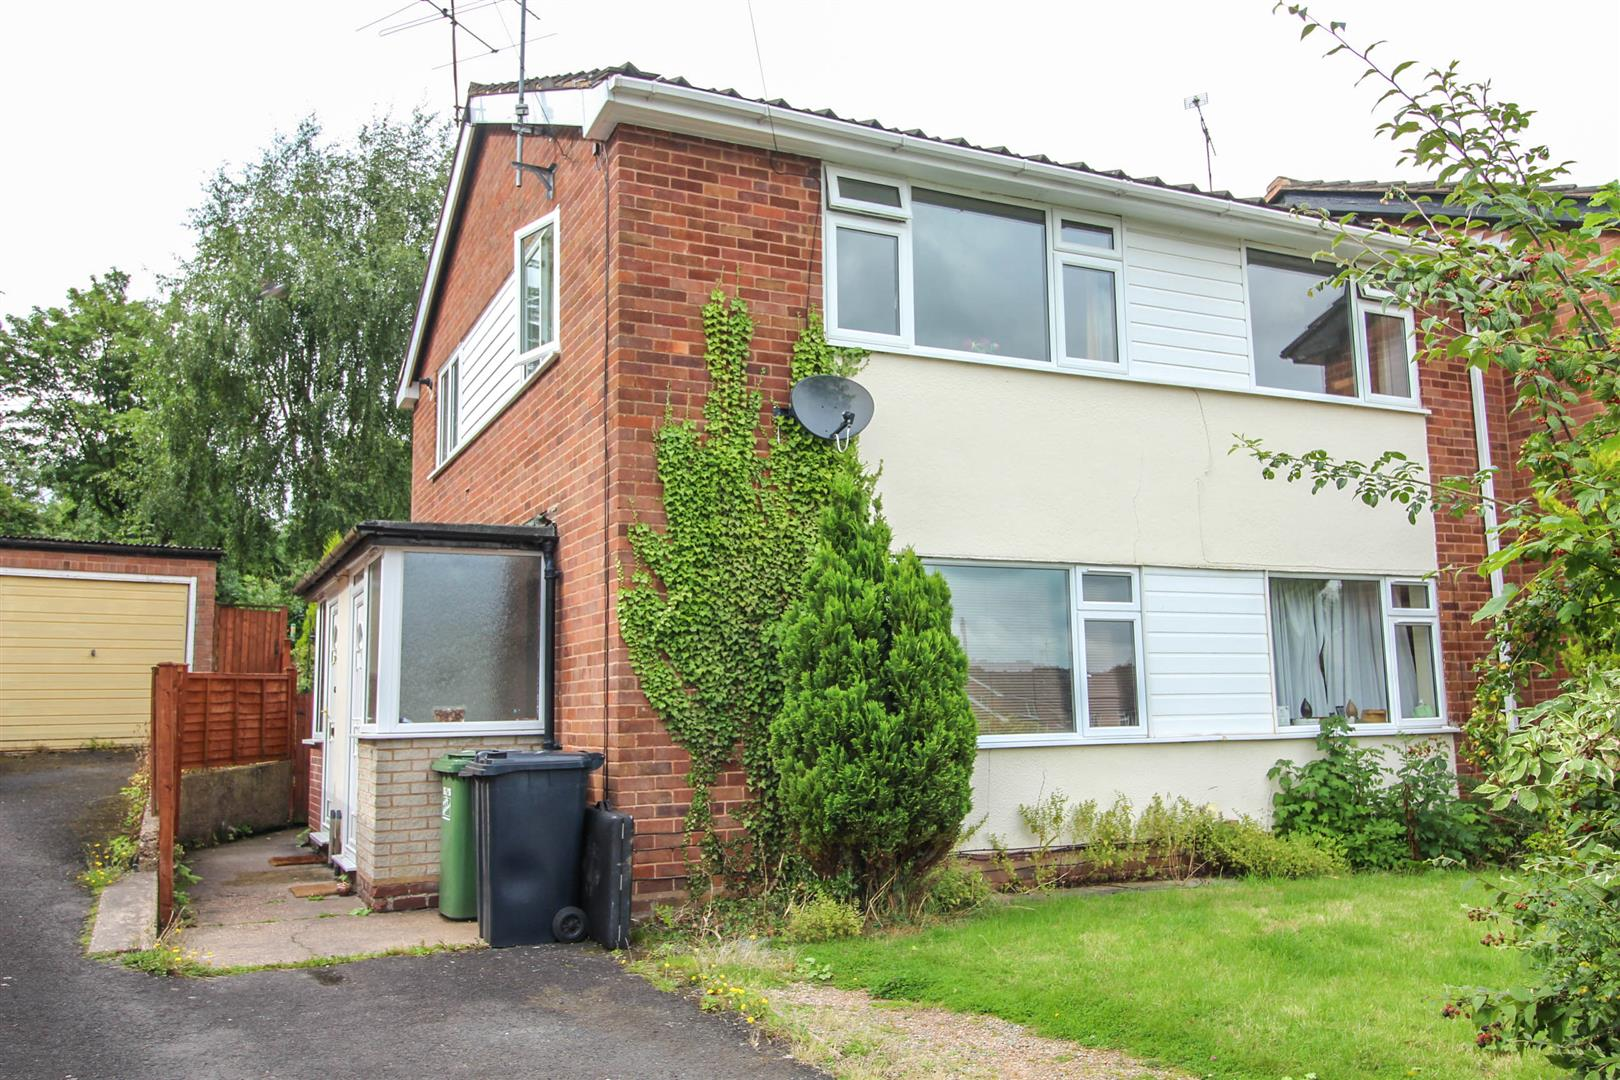 2 Bedrooms Maisonette Flat for sale in Coleridge Close, Redditch